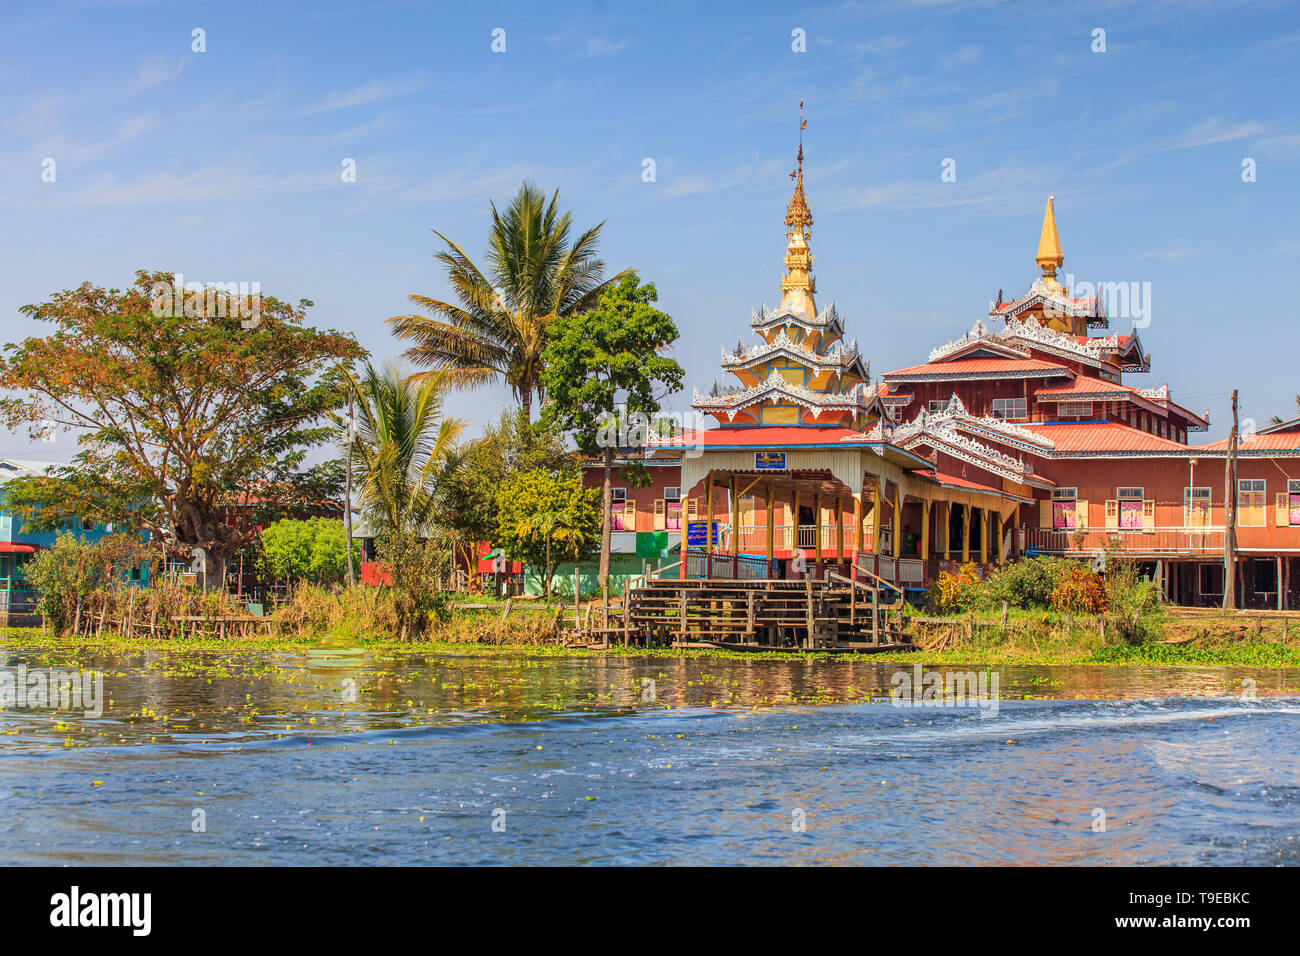 Pagoda on Inle Lake - Stock Image